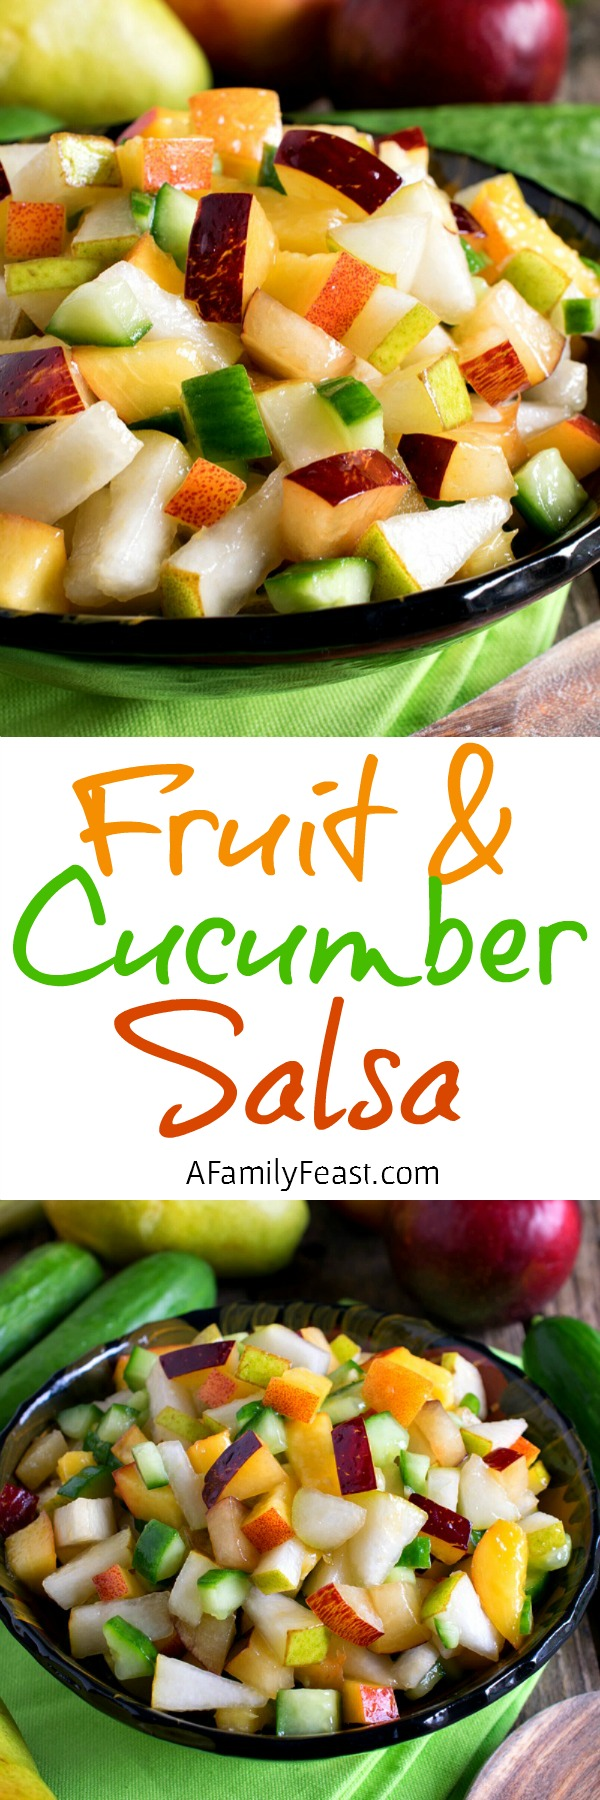 Fruit and Cucumber Salsa - A surprisingly delicious flavor combination! Fantastic side dish to any grilled meal or eaten with chips!